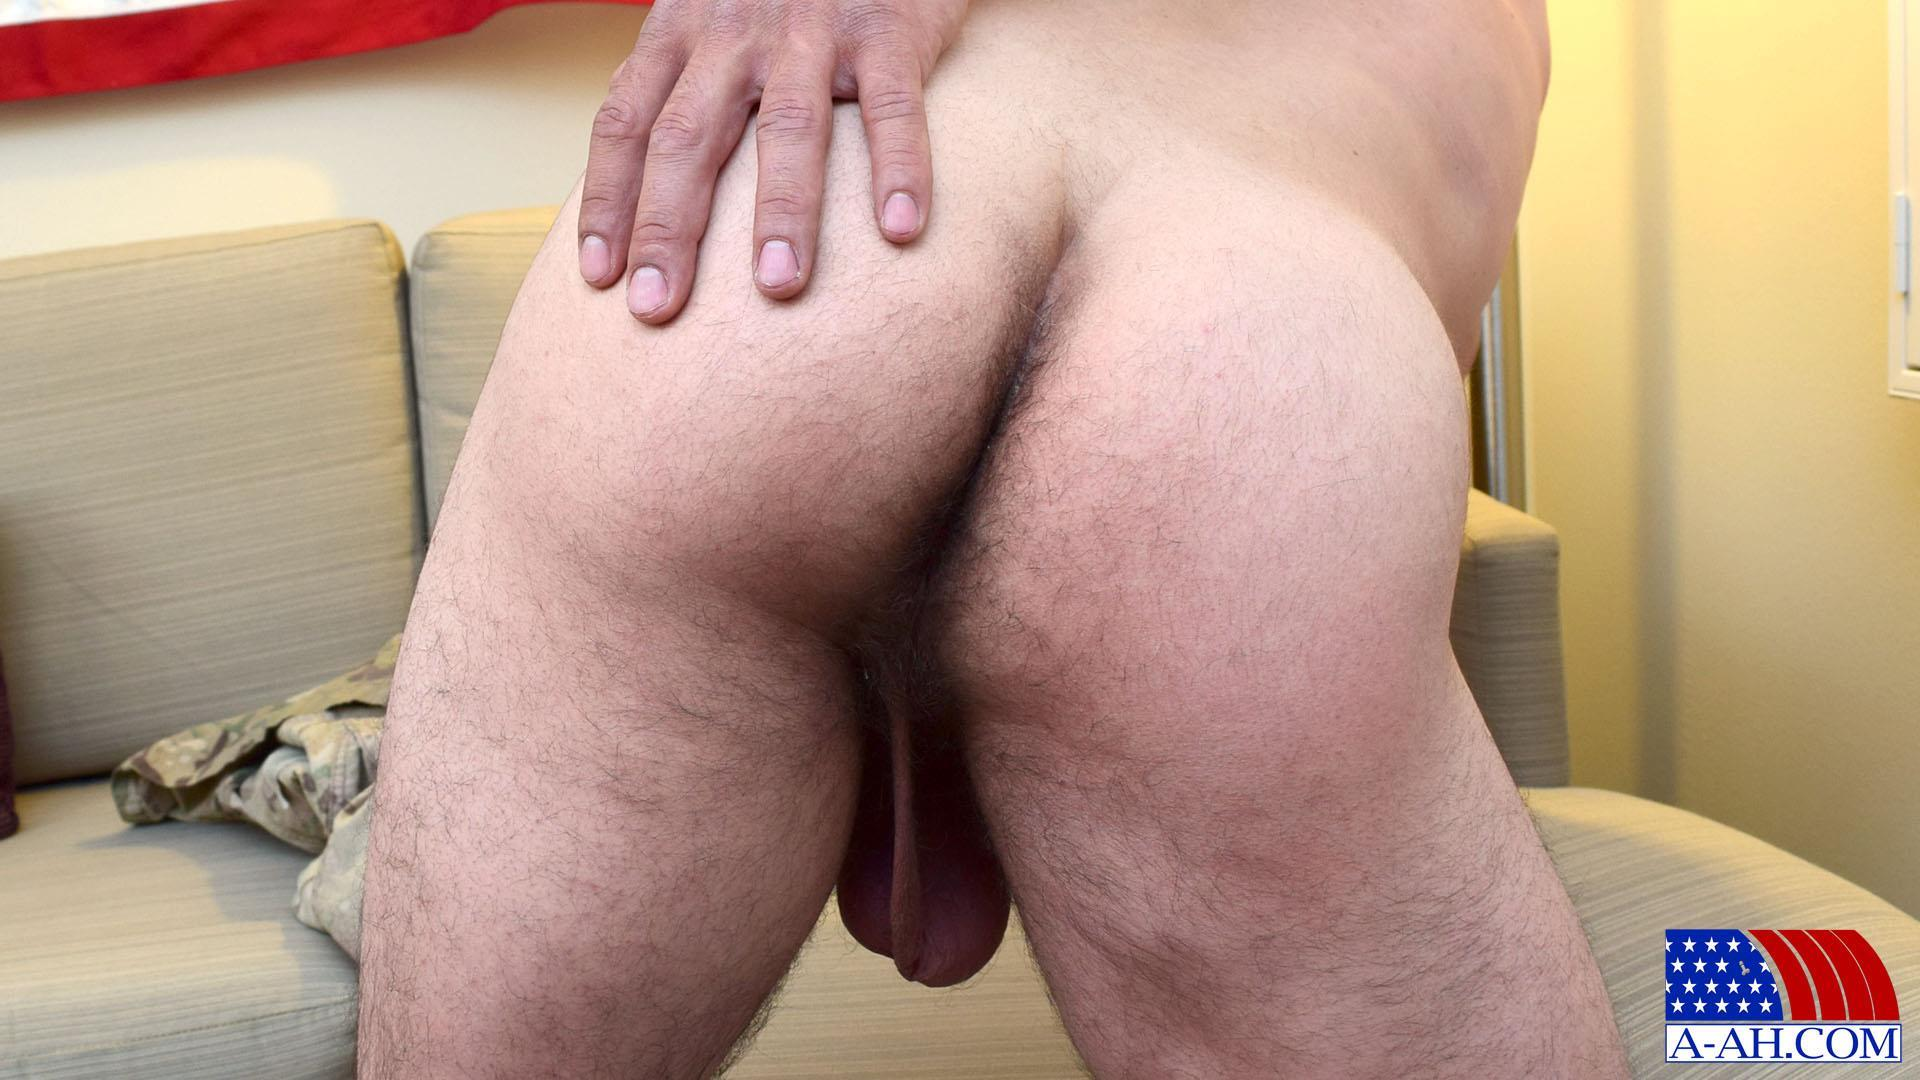 All American Heroes JB US Amry Soldier Jerking His Big Uncut Cock Amateur Gay Porn 13 Amateur Straight US Army Specialist Stroking His Big Uncut Cock